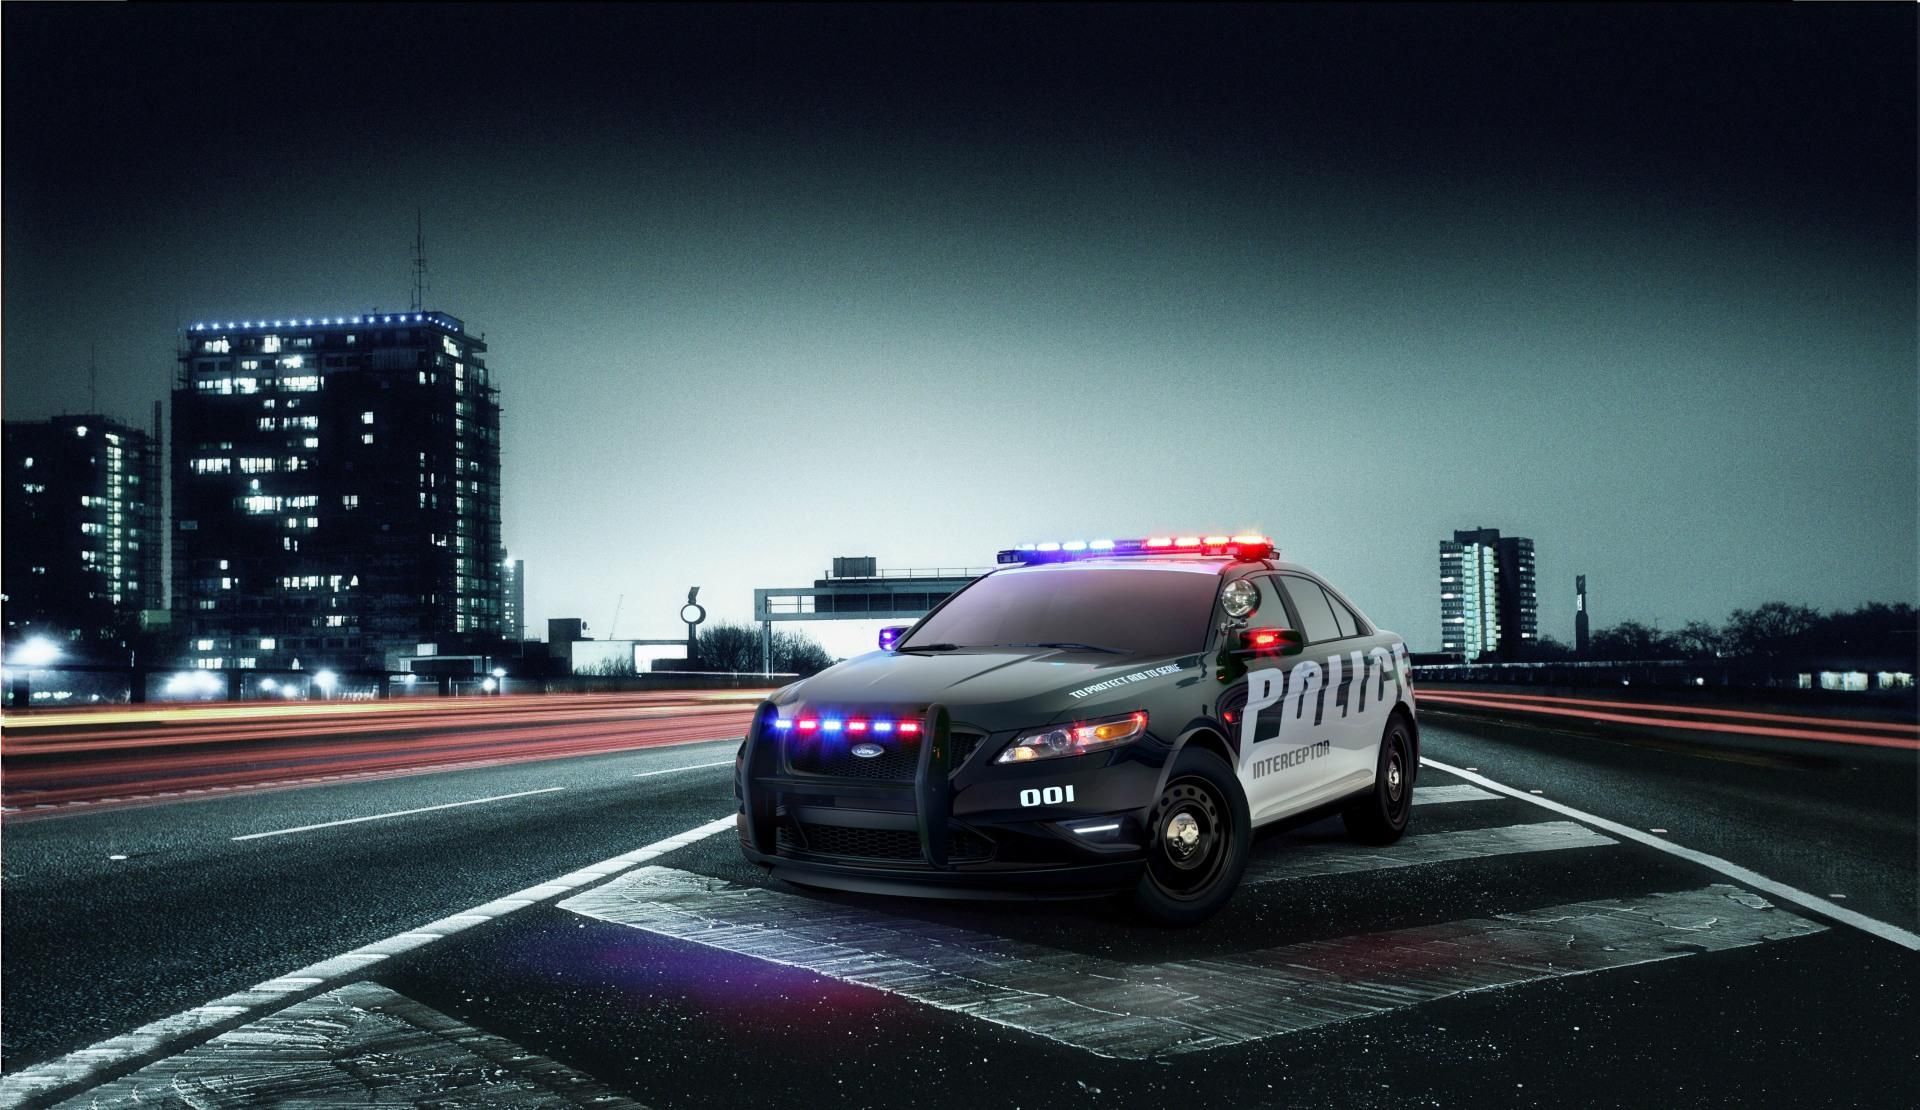 2011 Ford Police Interceptor News and Information